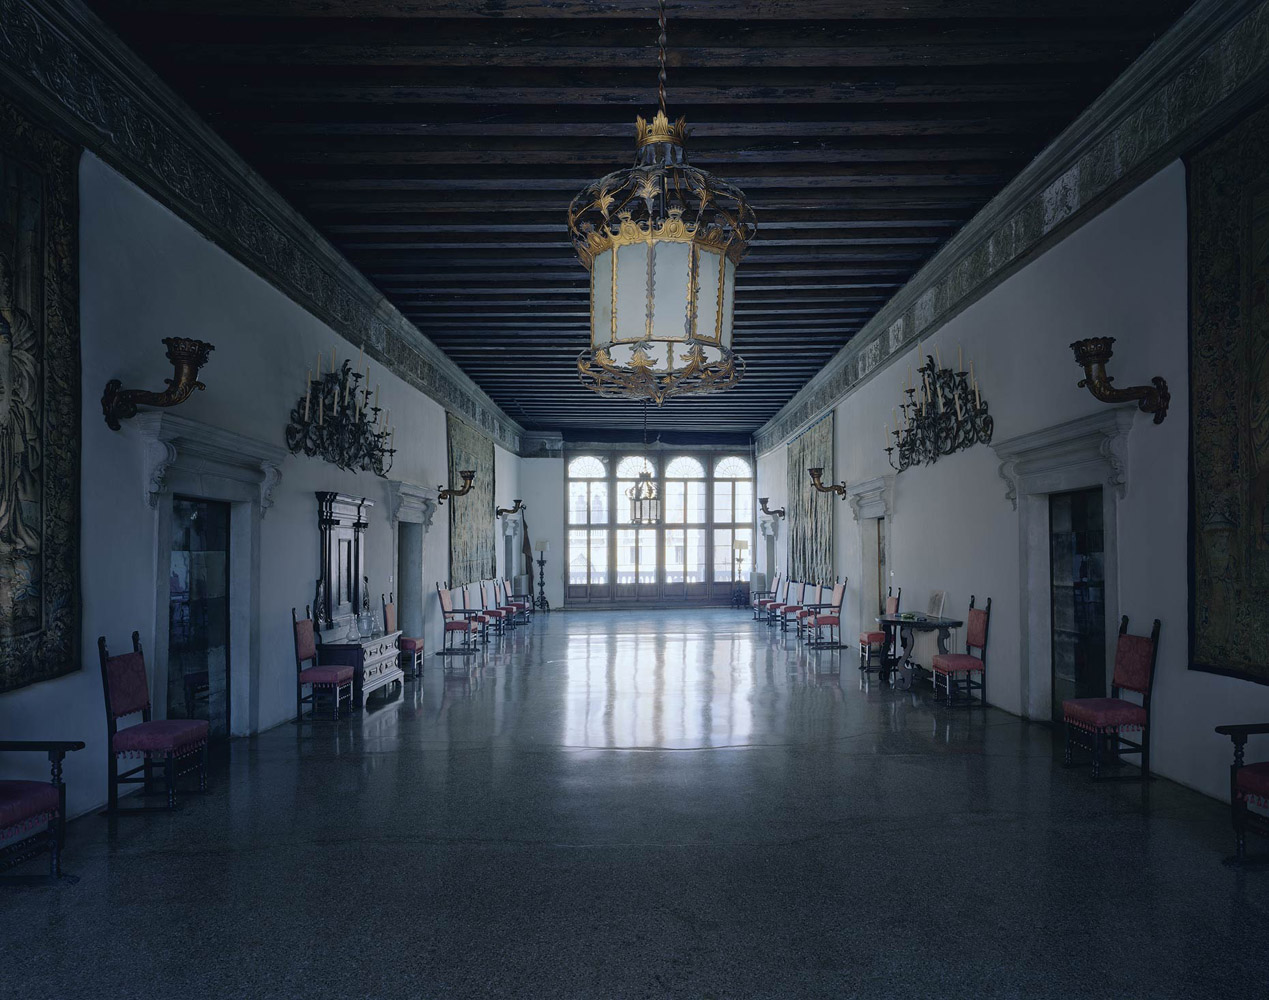 Palazzo Contarini Polignac, Venice, Italy, 2012, by David Leventi. Fujicolor Crystal Archive print of an interior palace room, mounted to Dibond